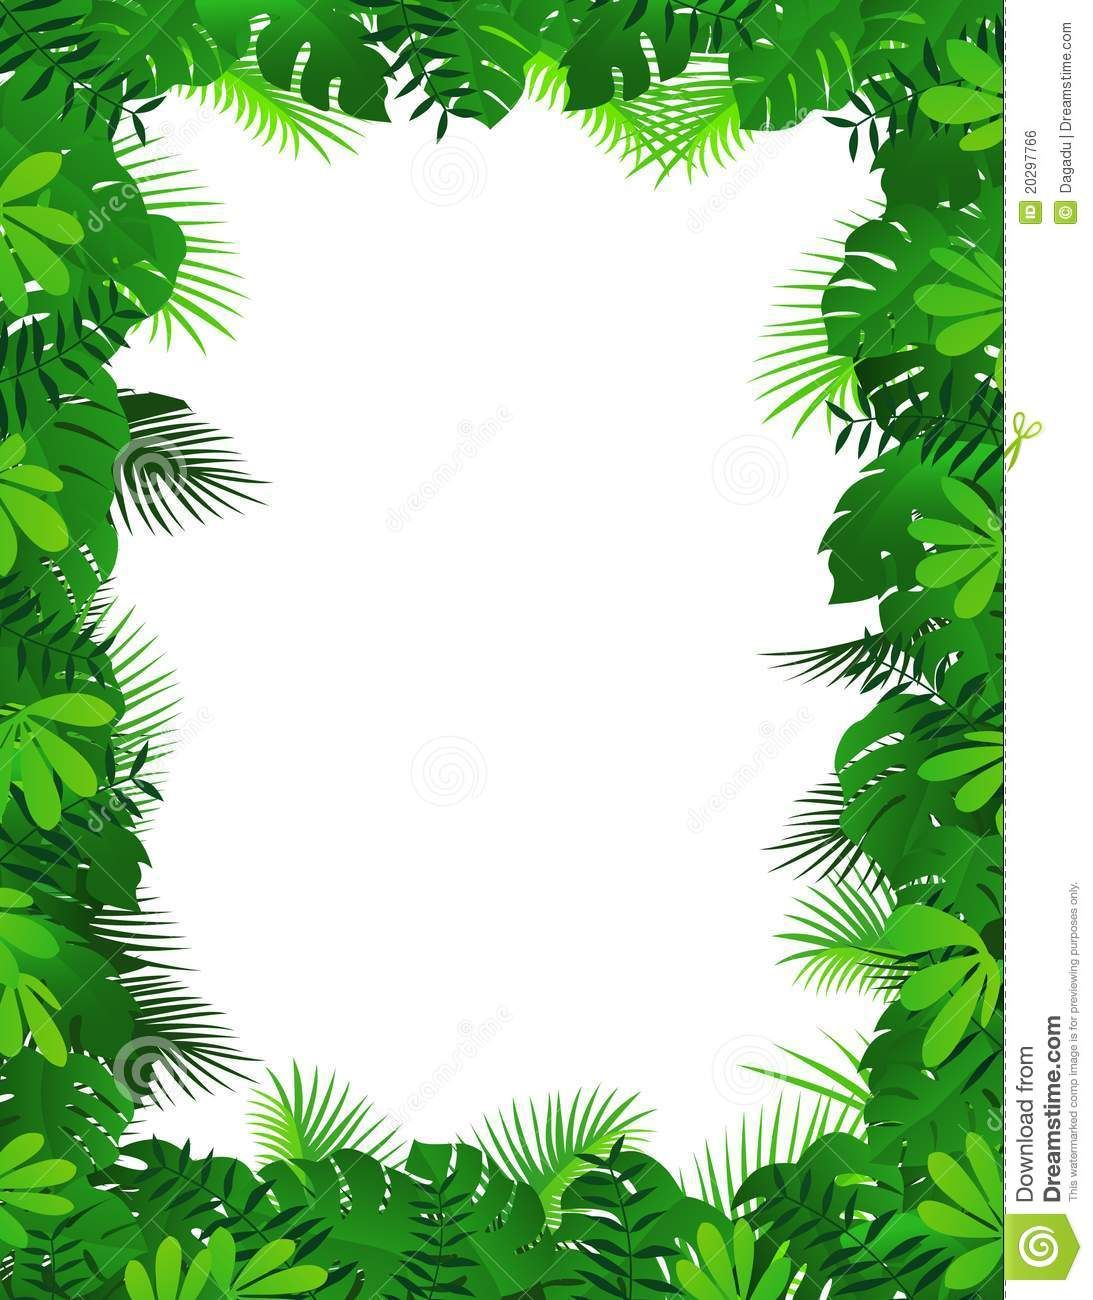 Nature Forest Frame